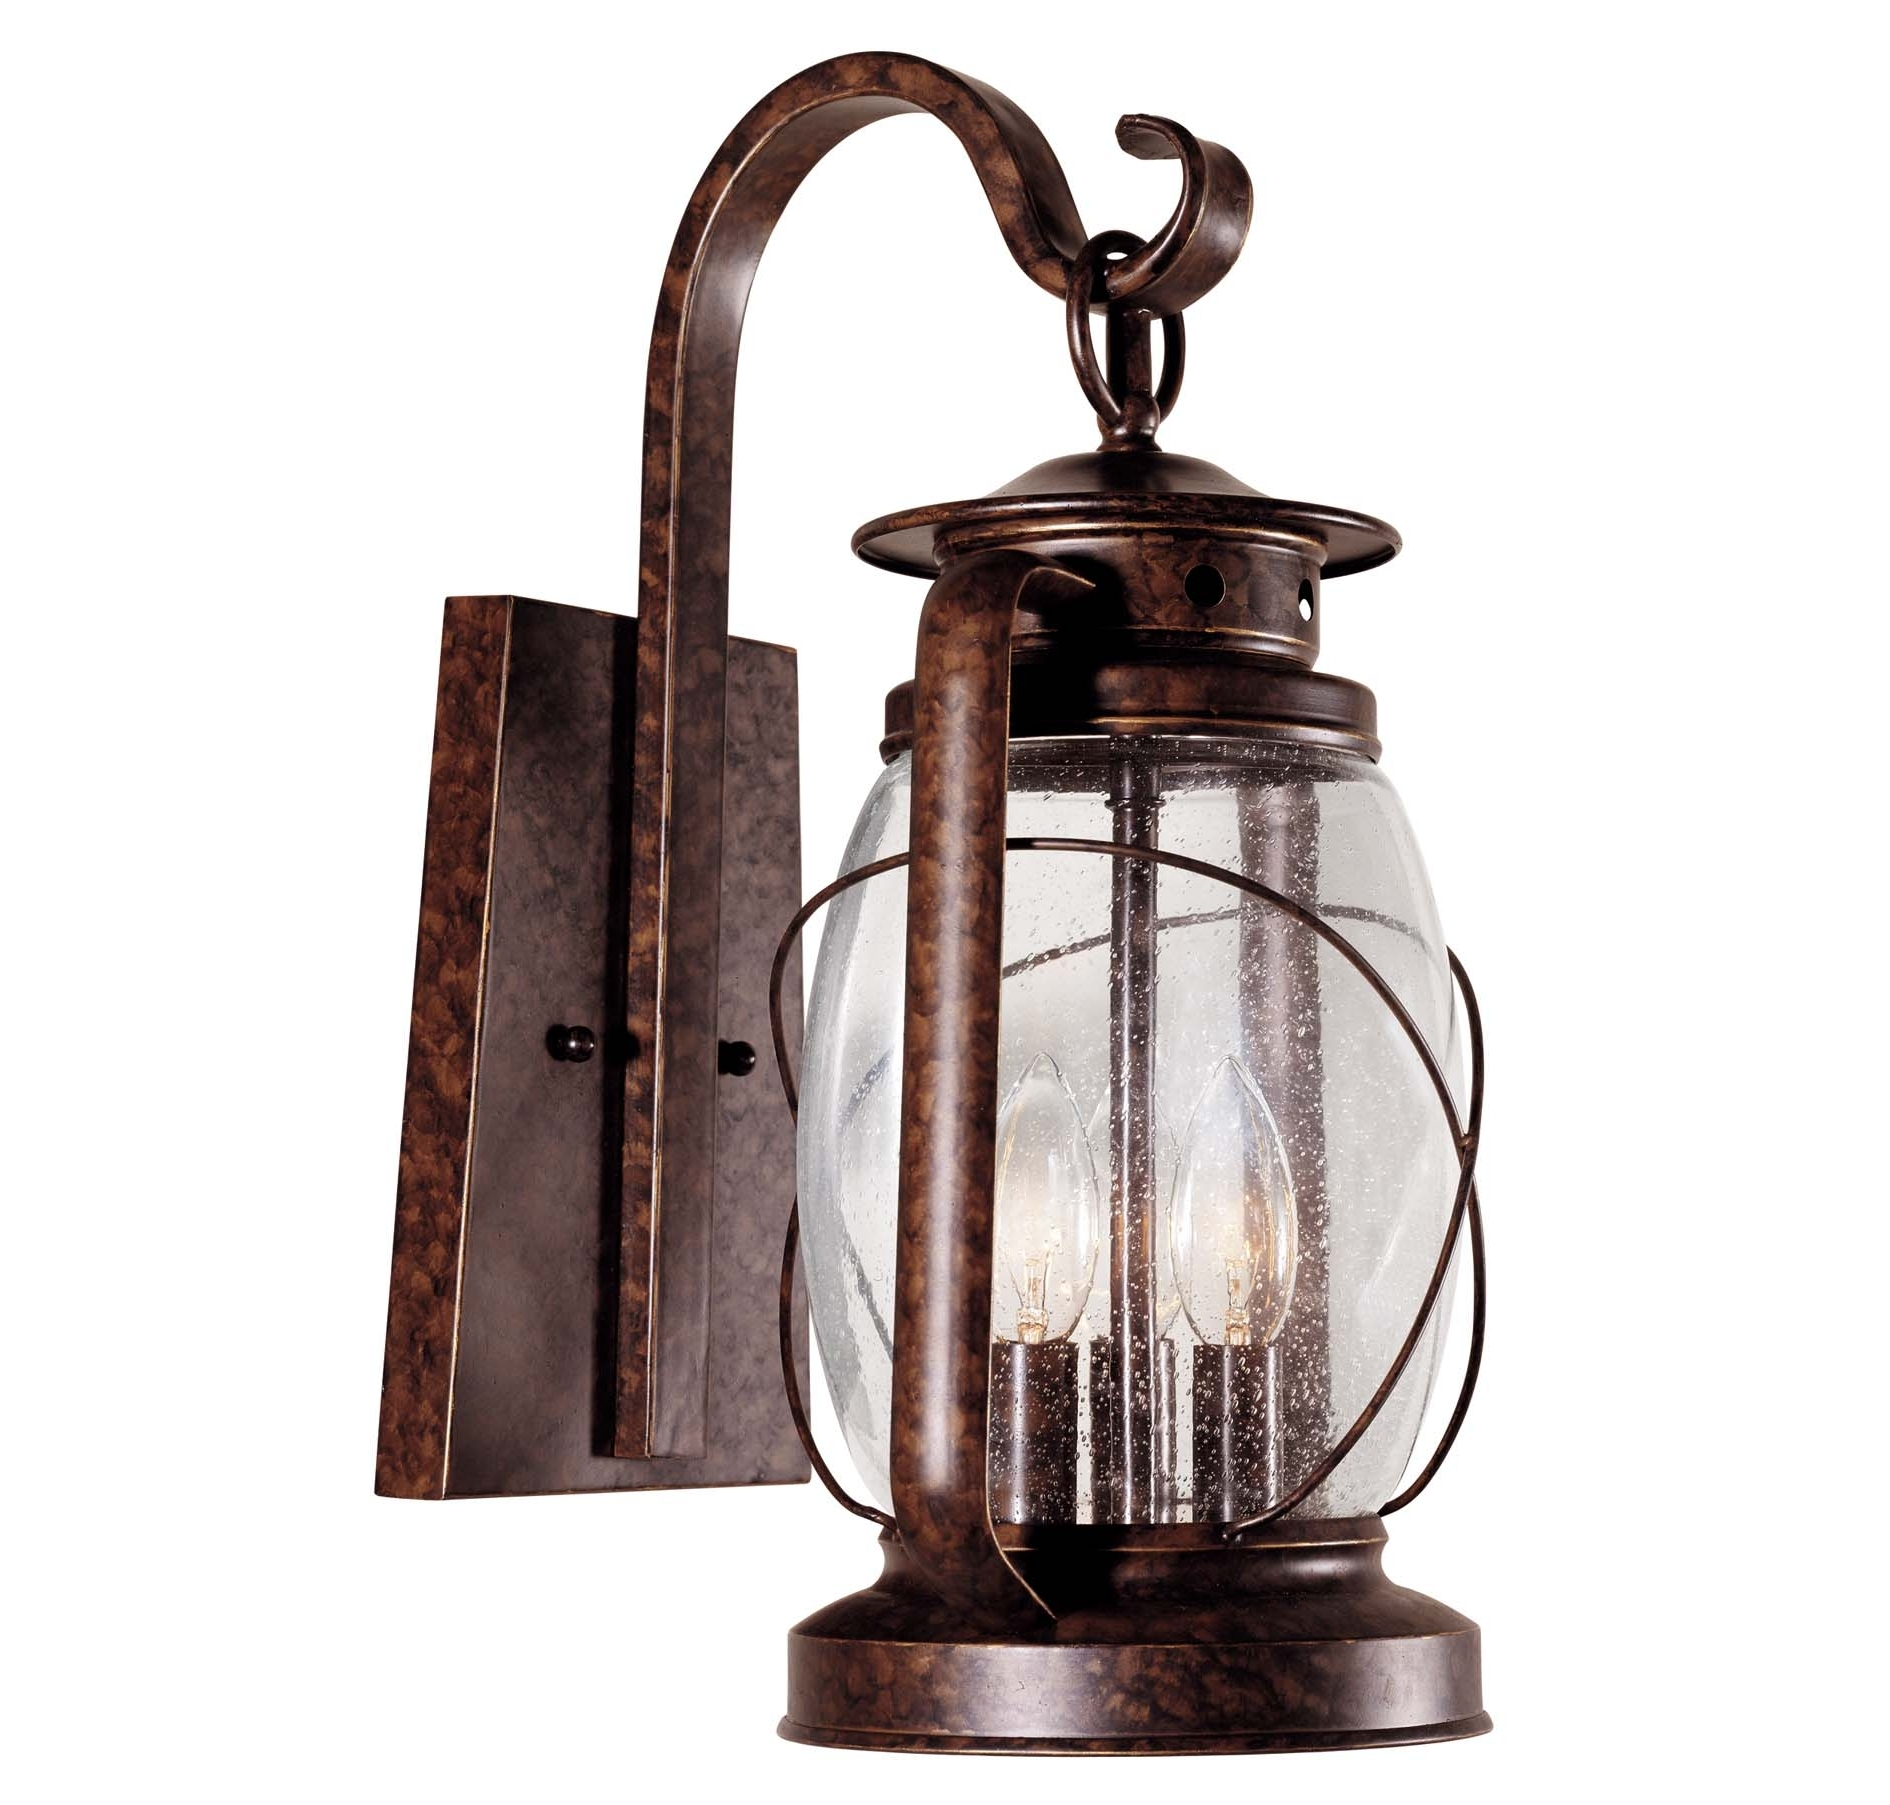 Outdoor Light With Outlet Plug Porch Fixtures Lighting Exterior Intended For Popular Large Outdoor Electric Lanterns (View 15 of 20)